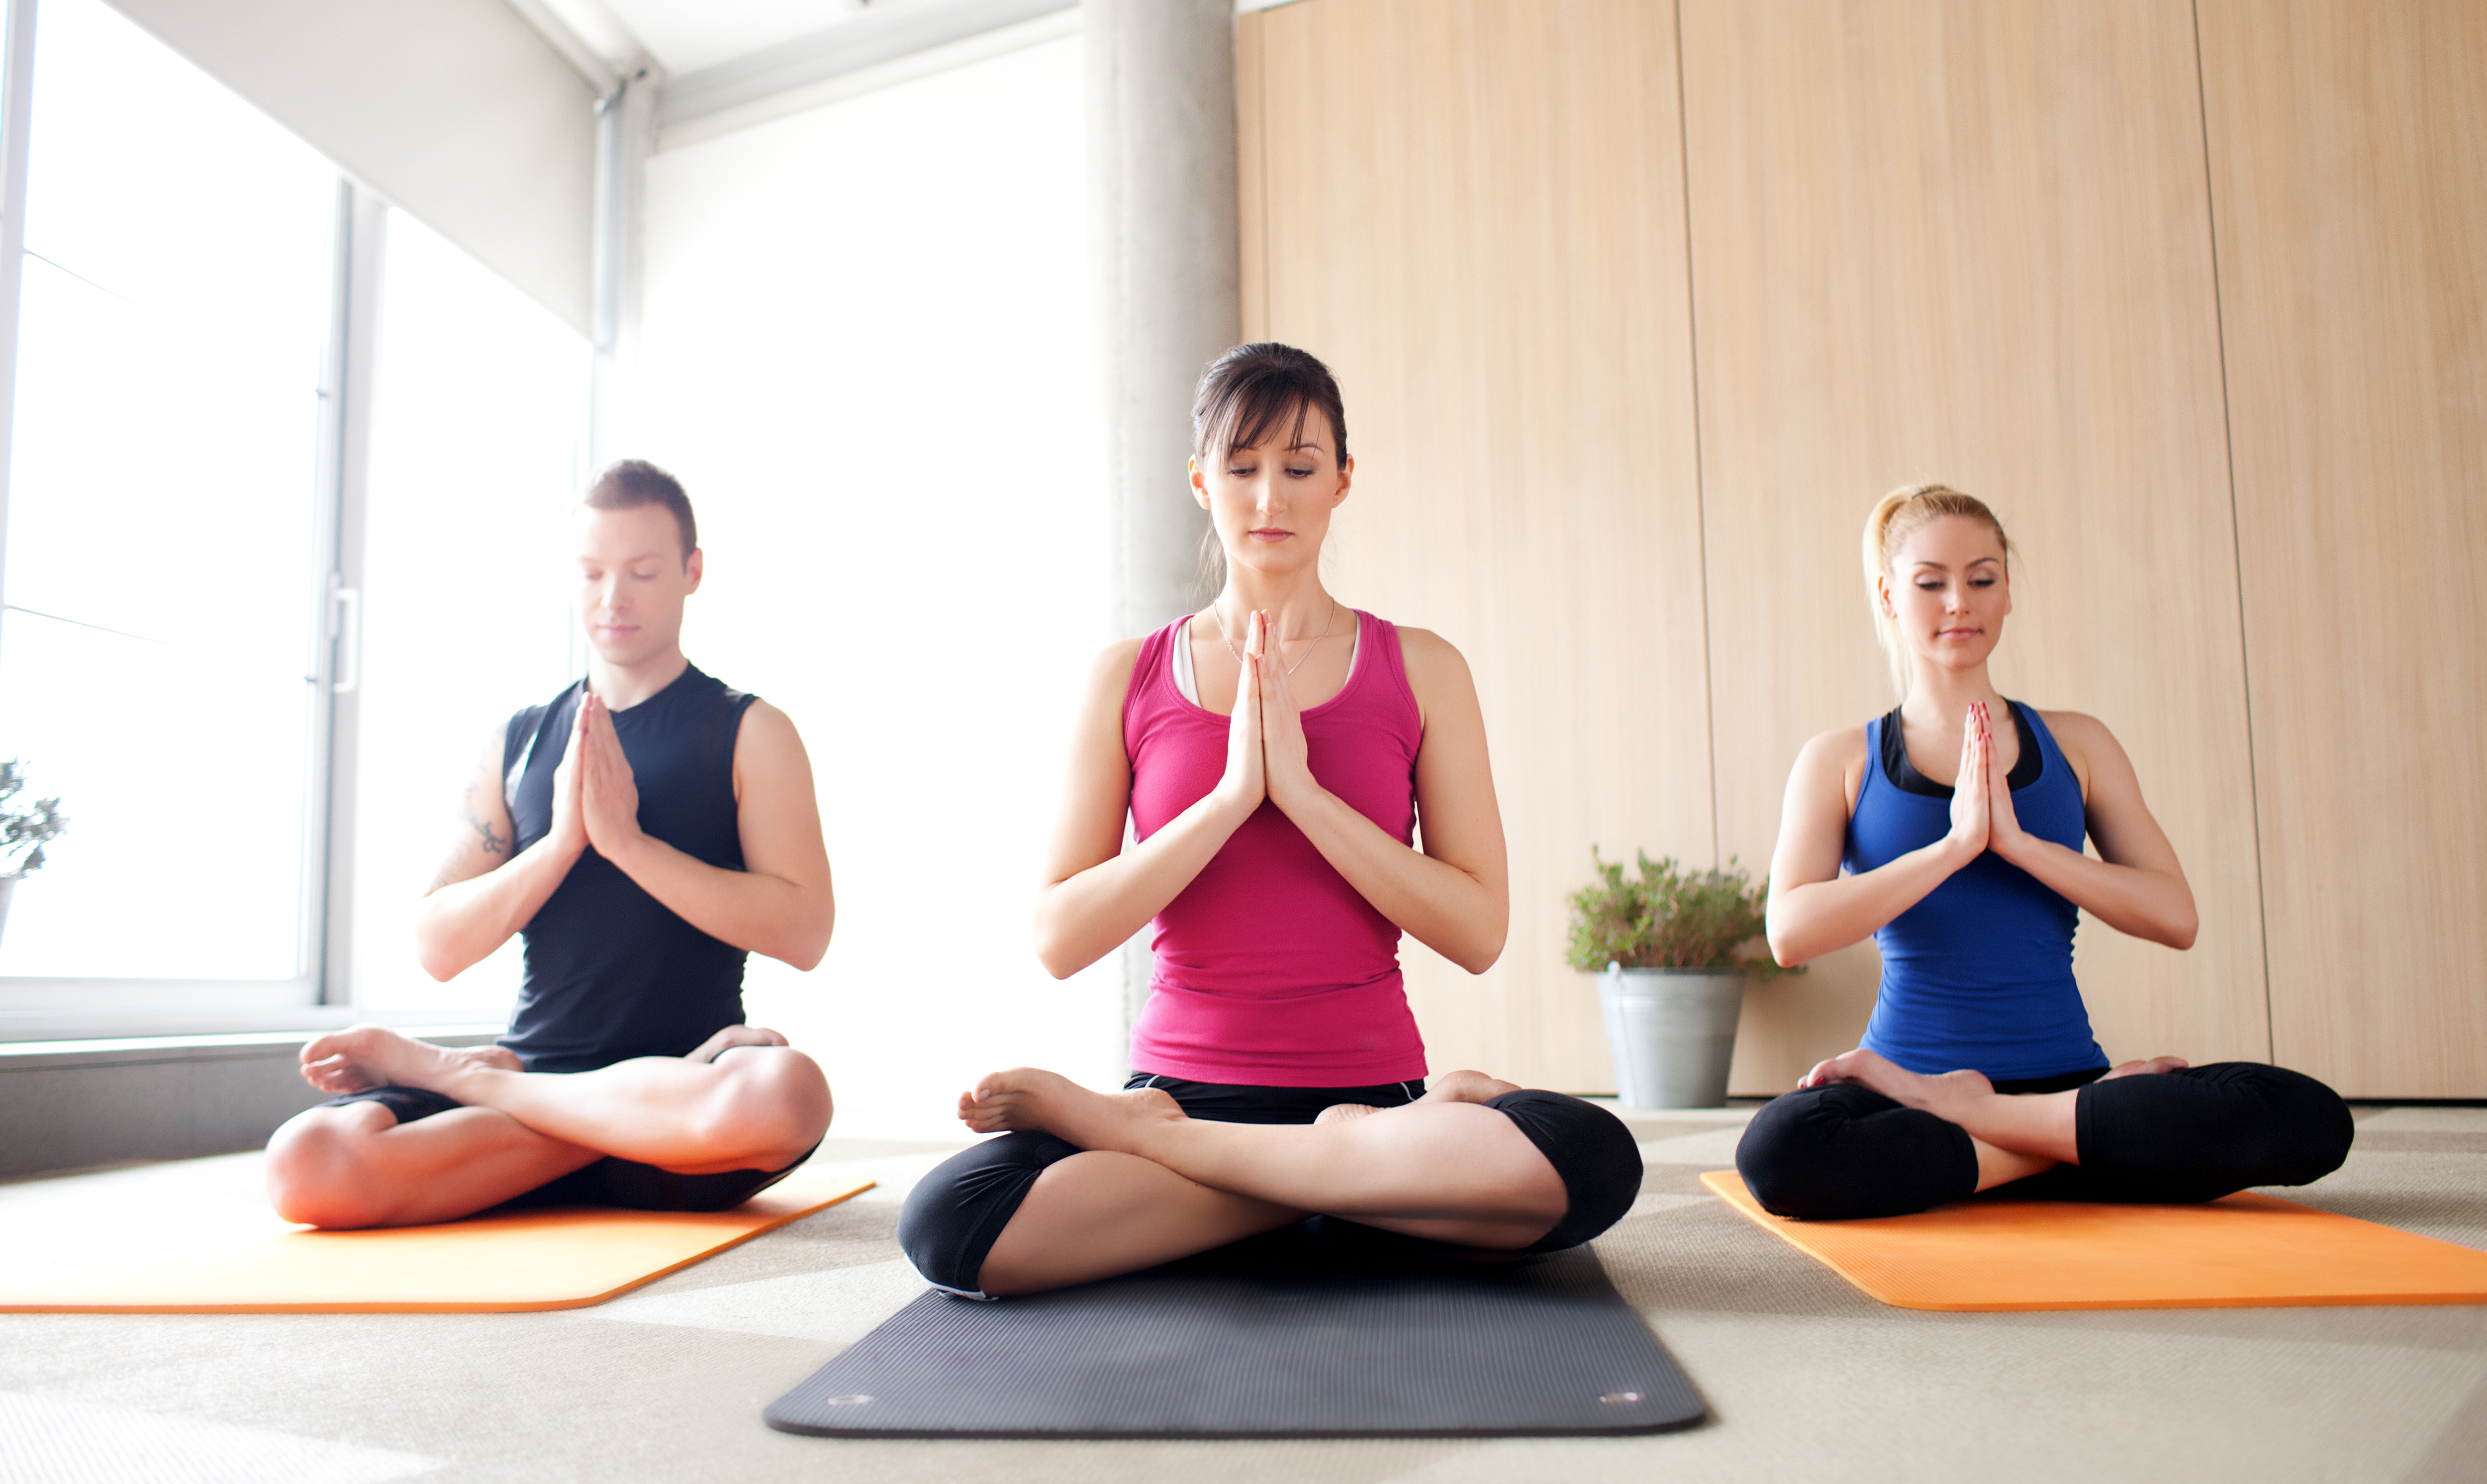 Starting Professional Carrier As Accomplished Yoga Teacher with Yoga Training and Certification